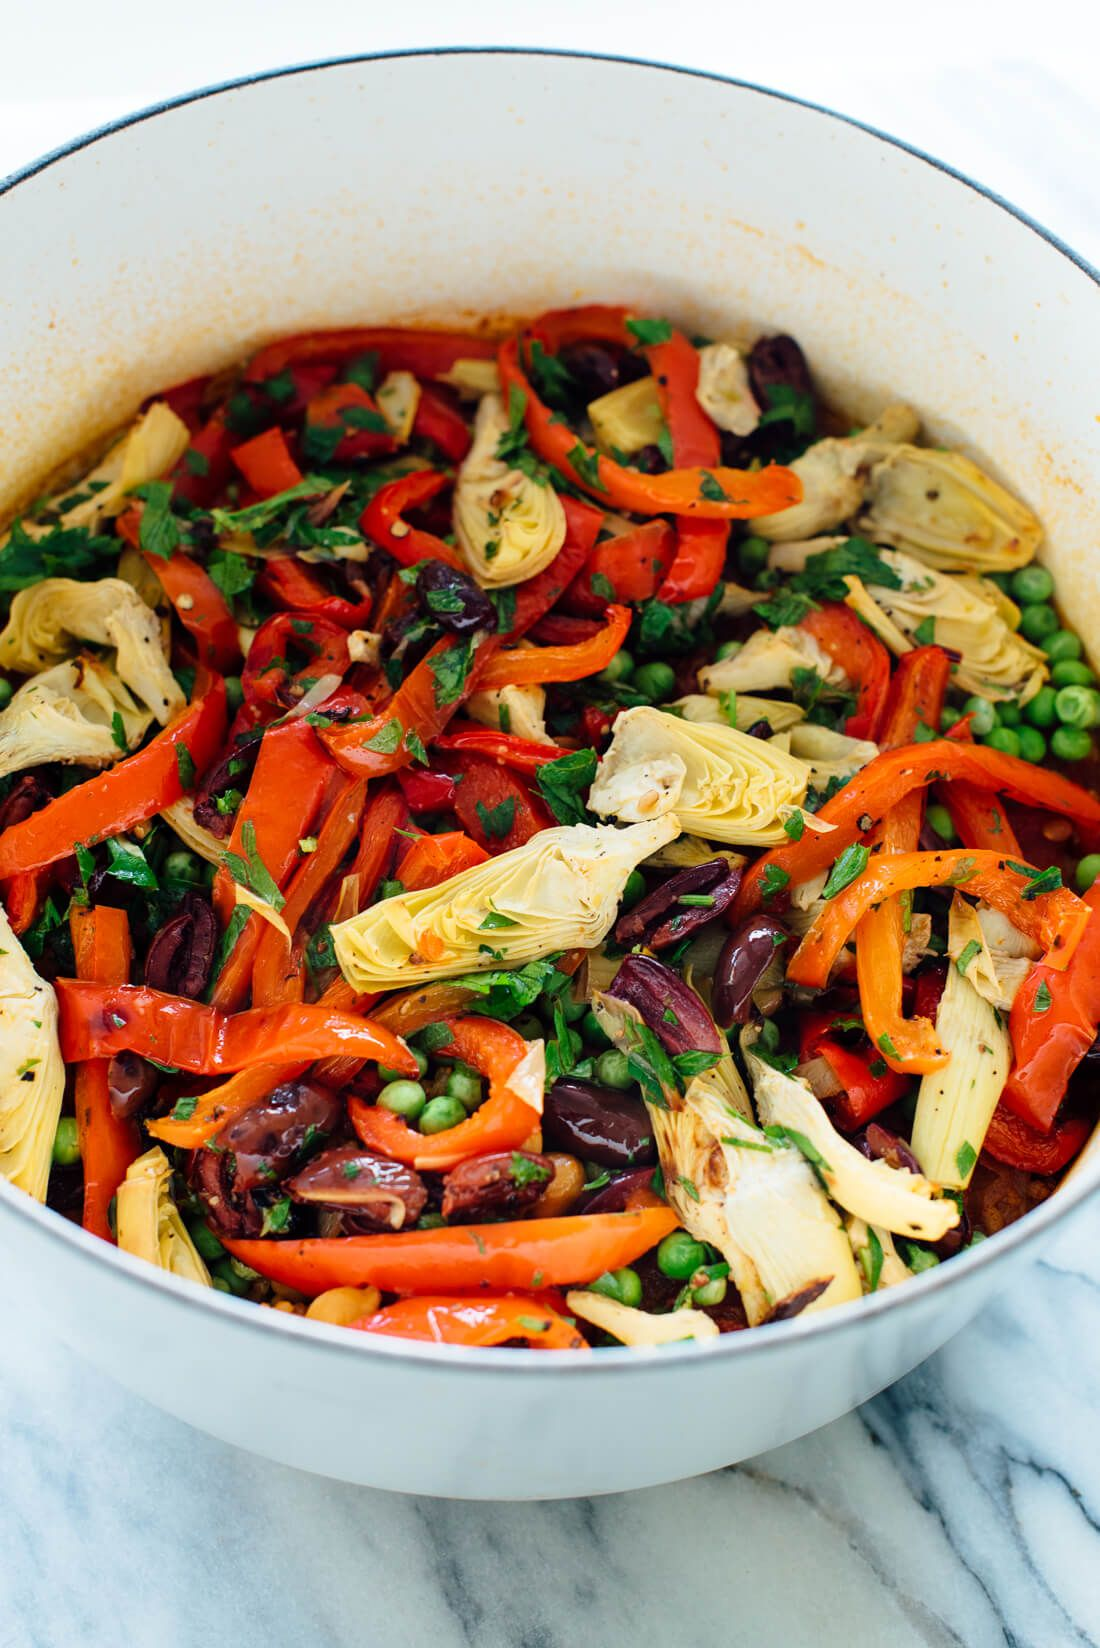 Vegetable paella recipe paella spanish dishes and gluten free forumfinder Choice Image